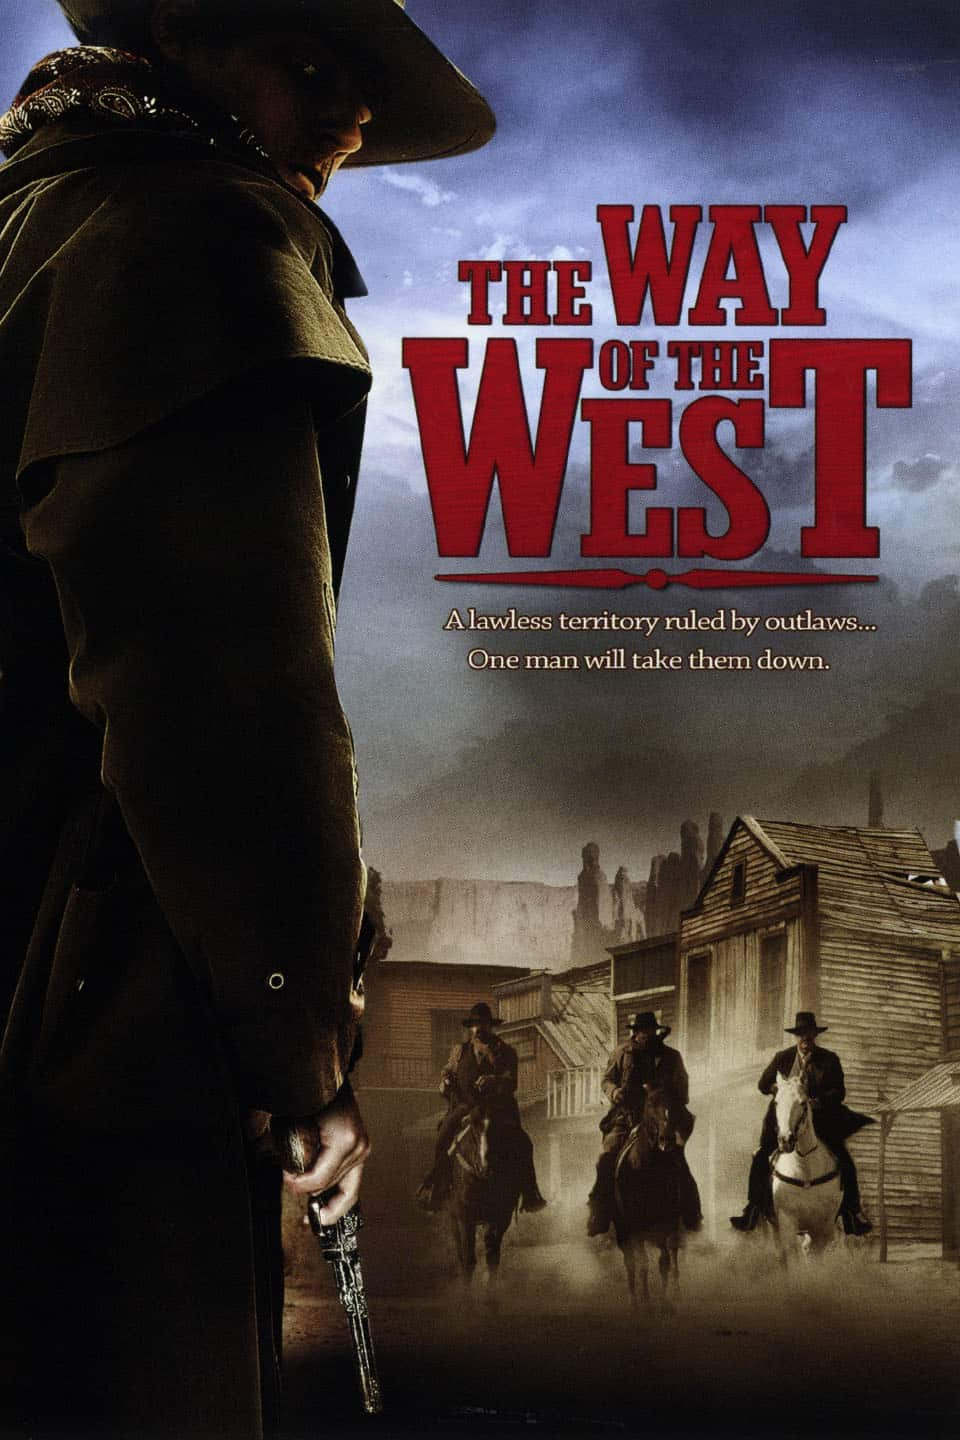 The Way of the West, 2011